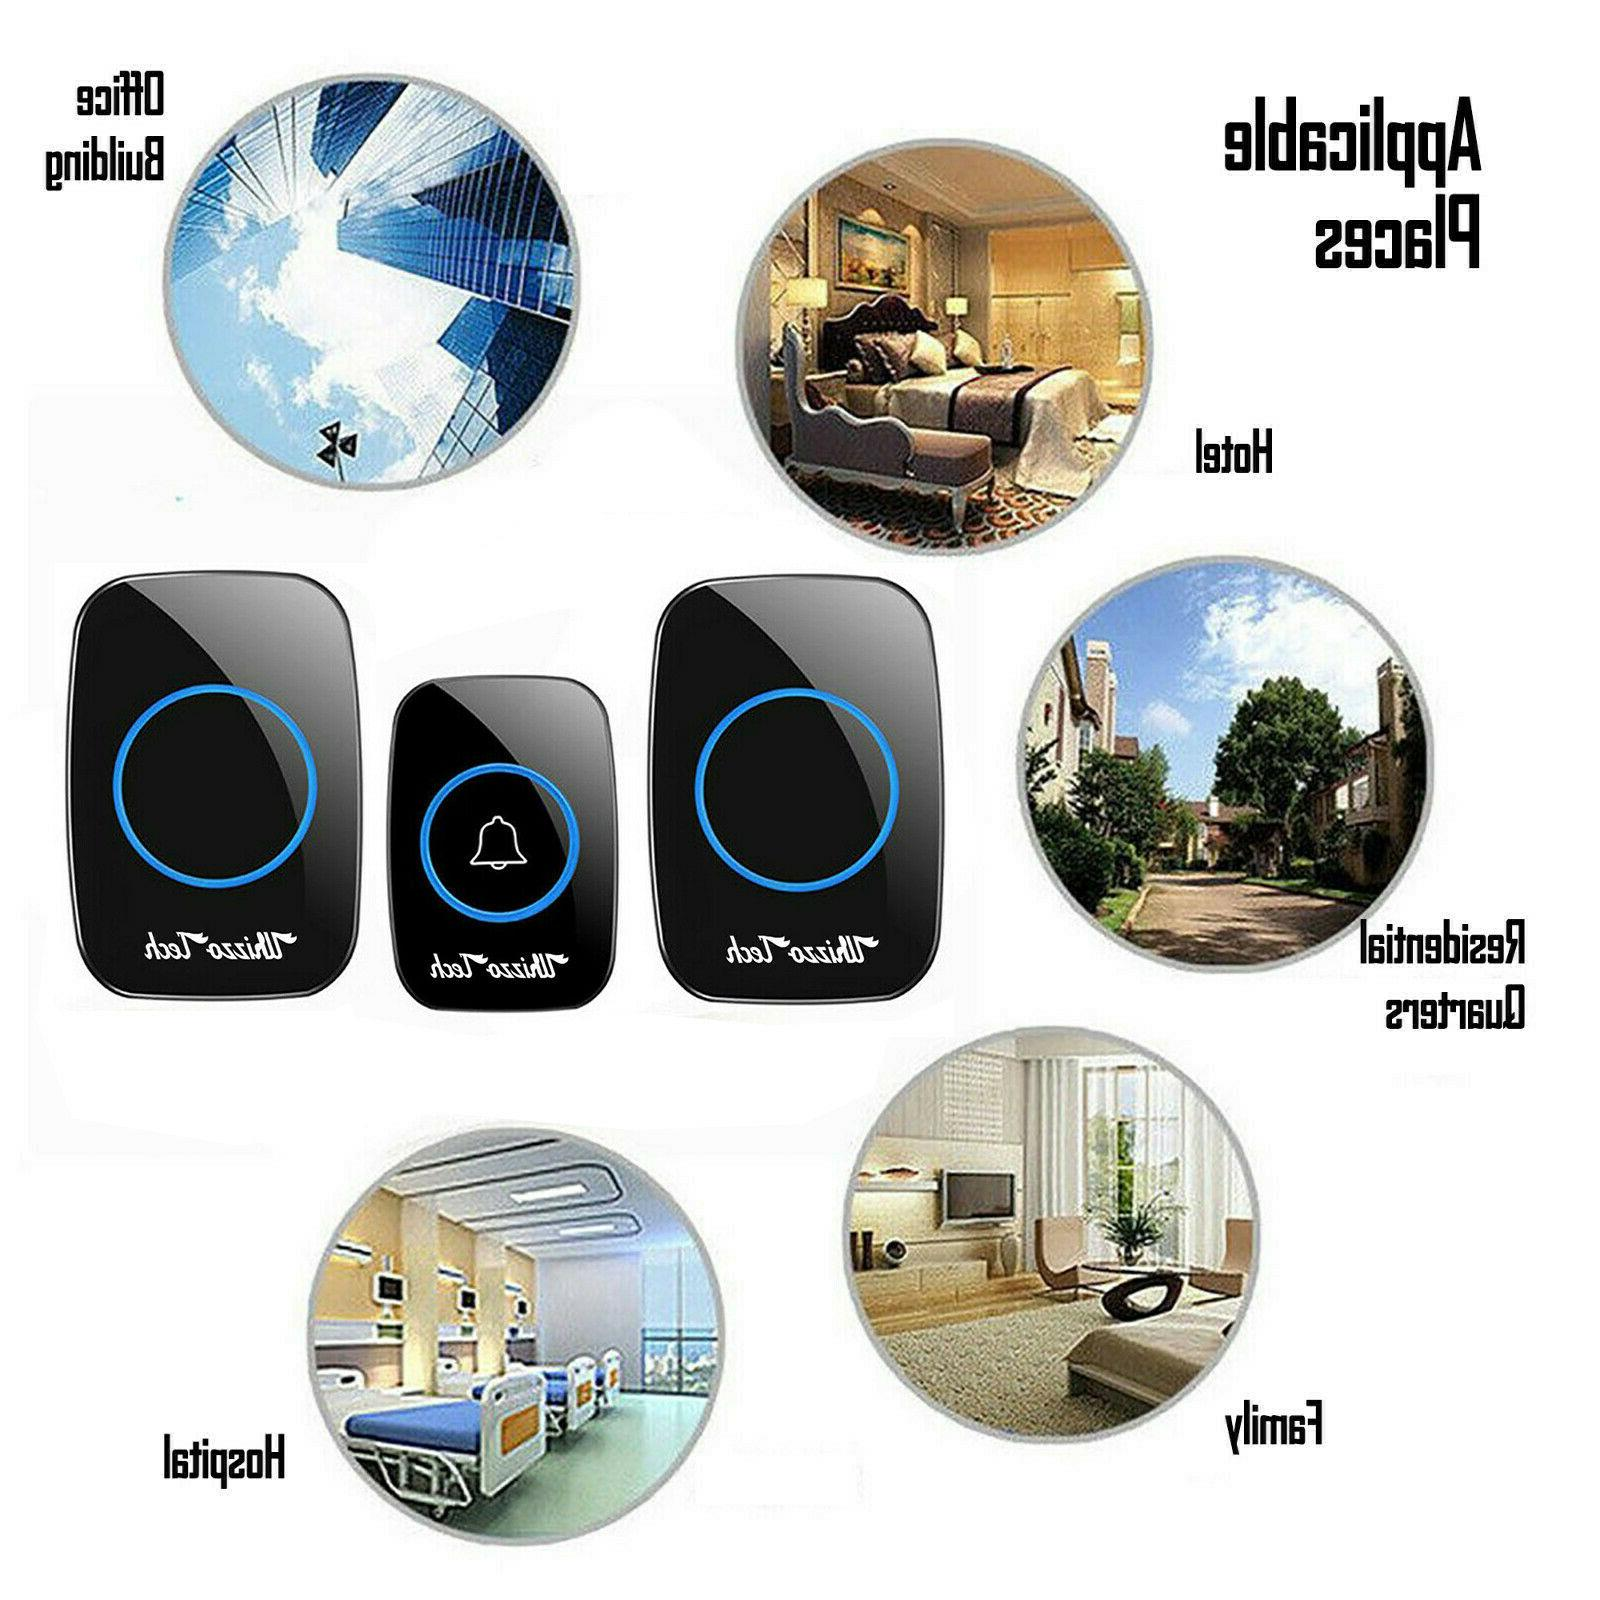 Wireless Doorbell Waterproof Plugin 1000FT 38 Chime